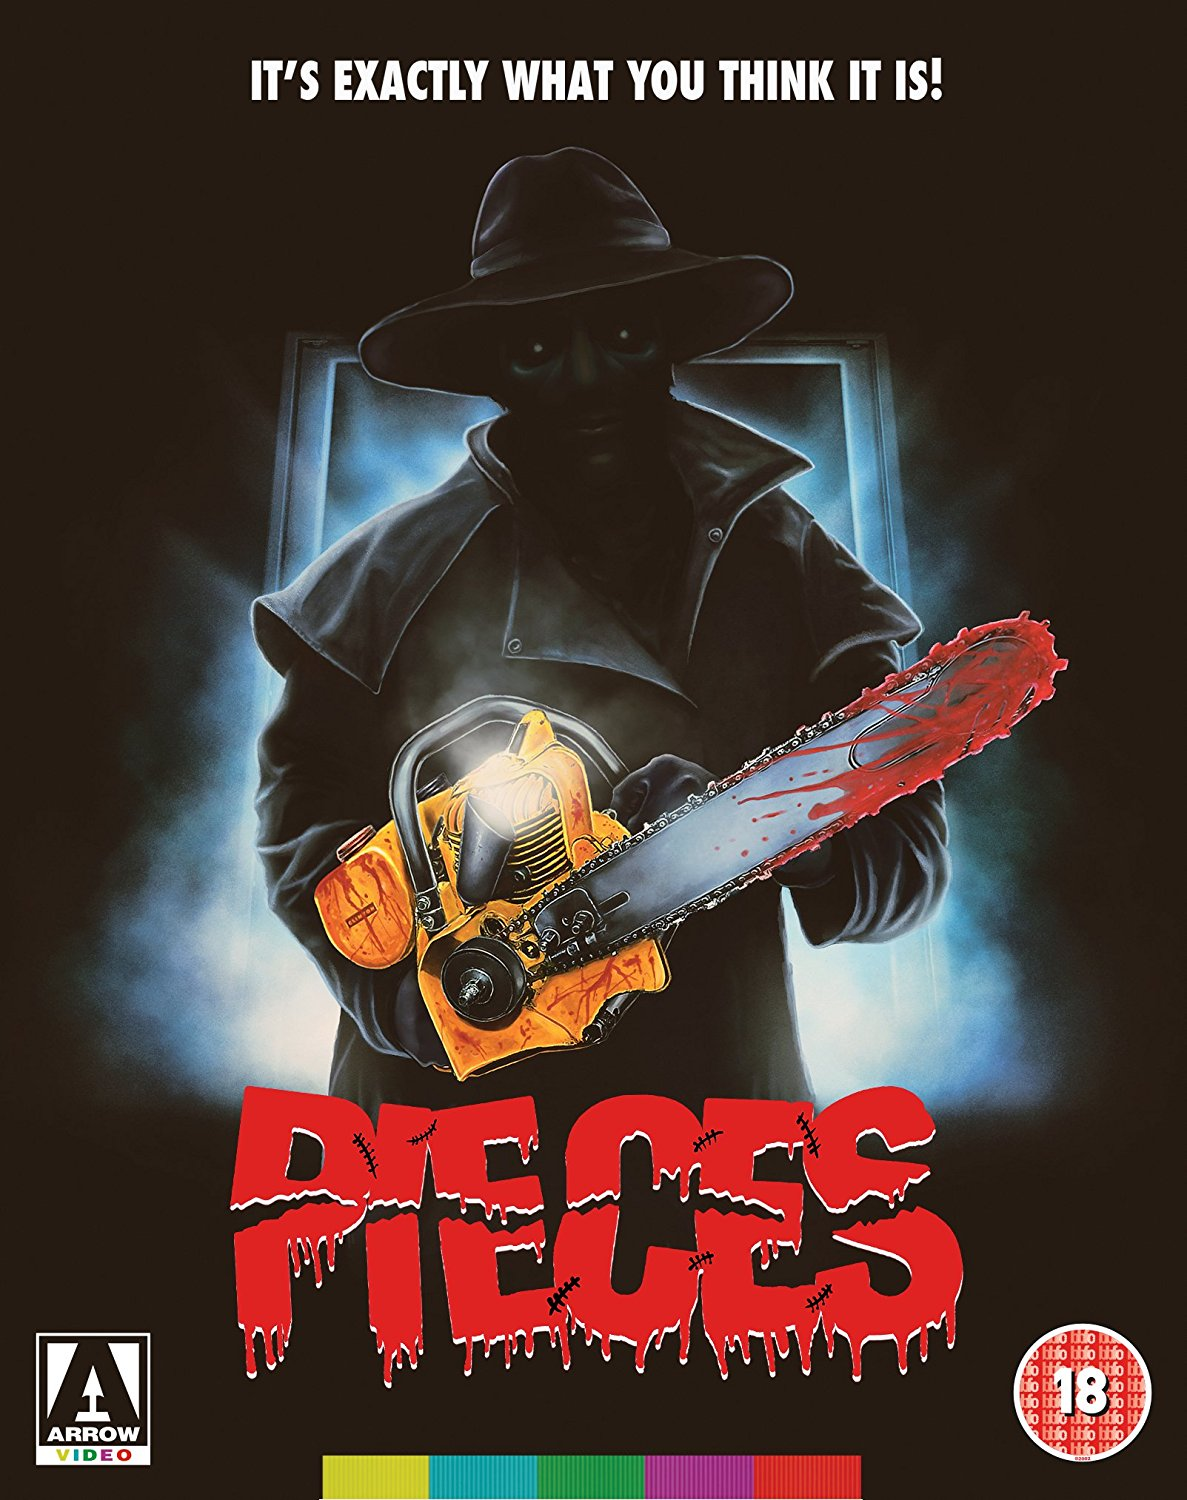 Pieces Limited Edition UK Blu-Ray